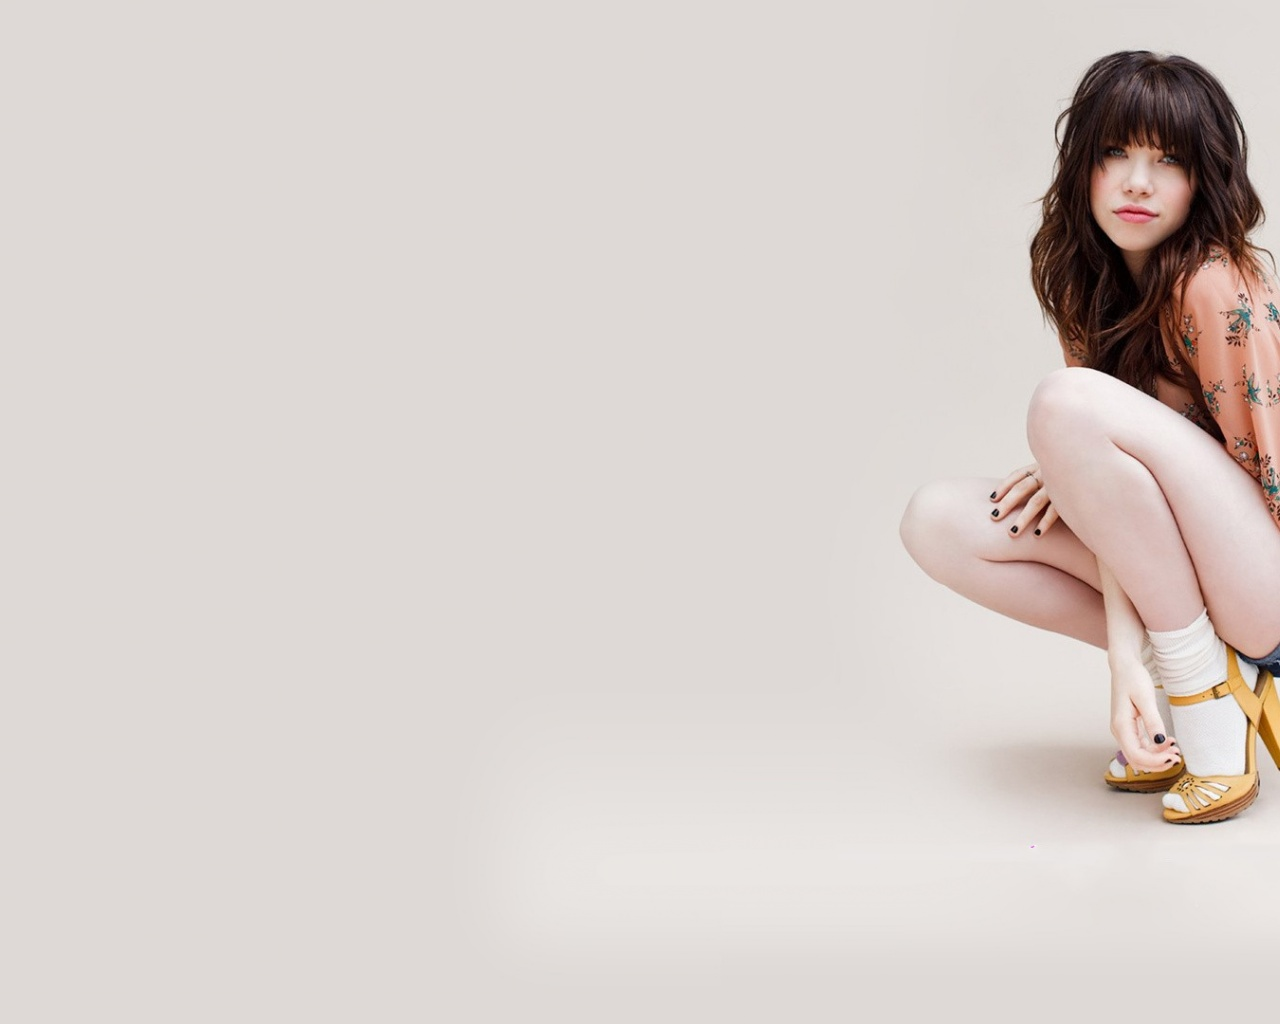 click to free download the wallpaper--Beautiful Lady Post, Carly Rae Jepsen in Hot Dress, Shoes in High Heel 1280X1024 free wallpaper download